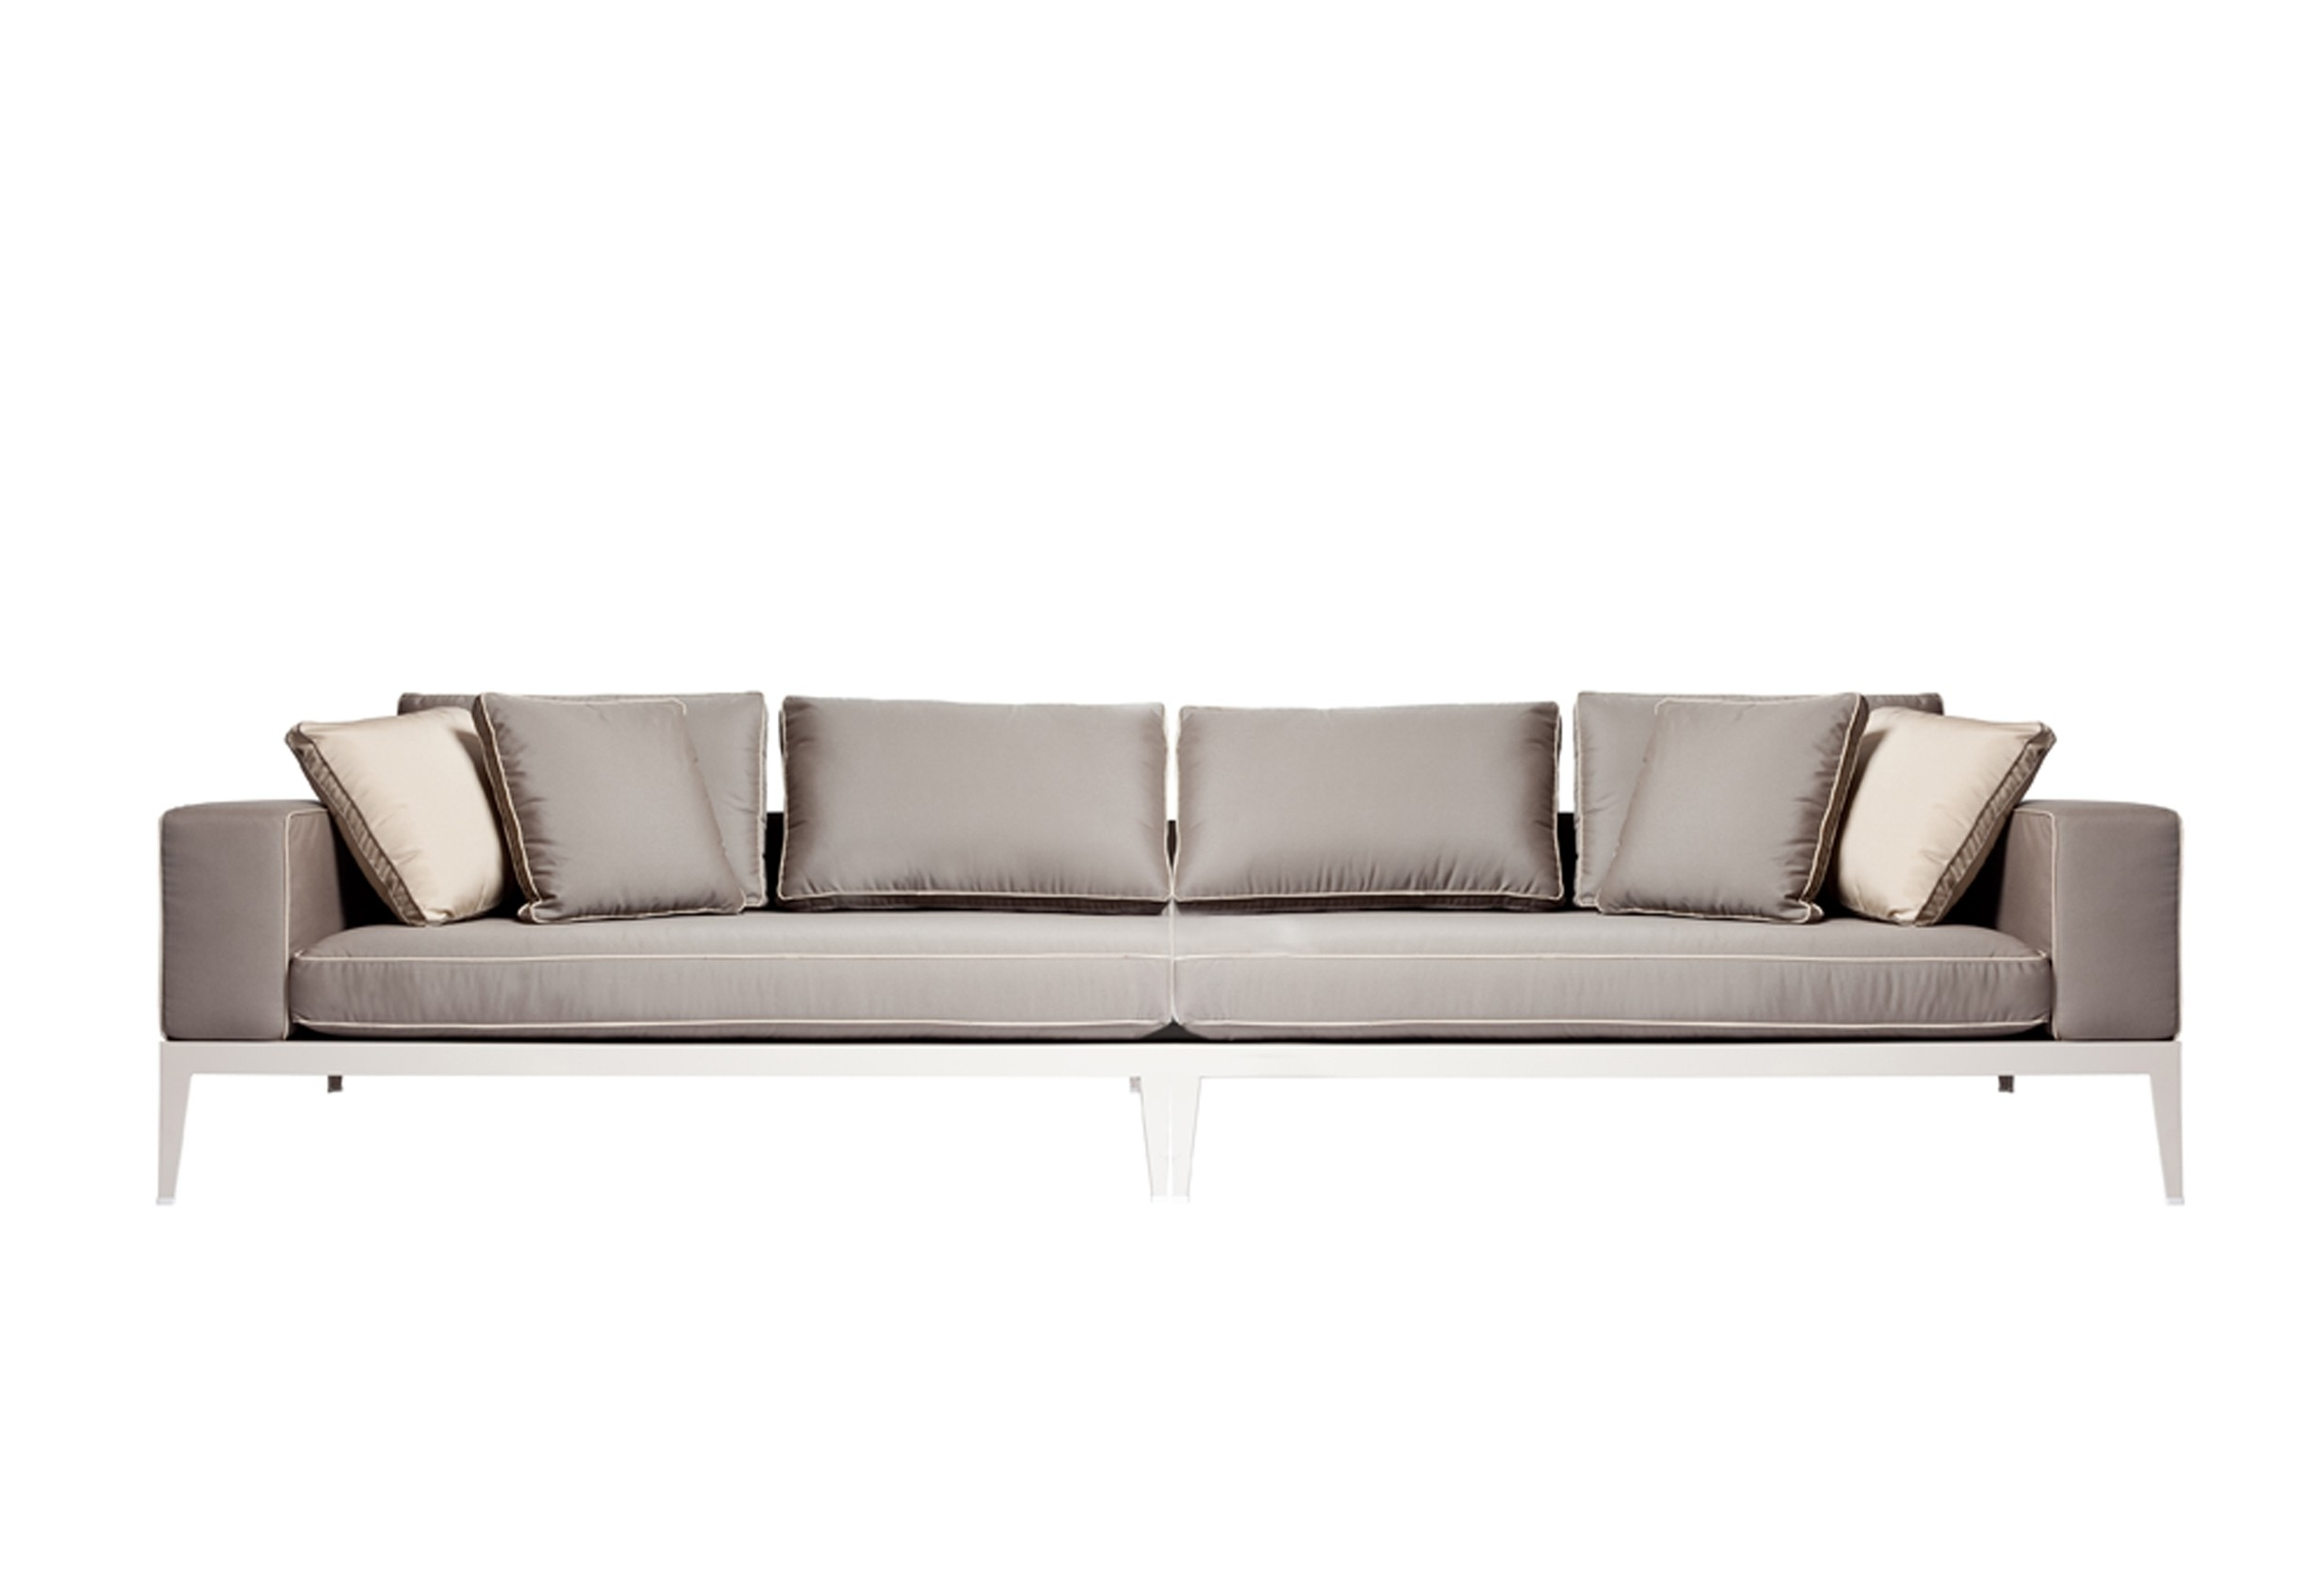 Balmoral 4 Seater Sofa (View 3 of 15)